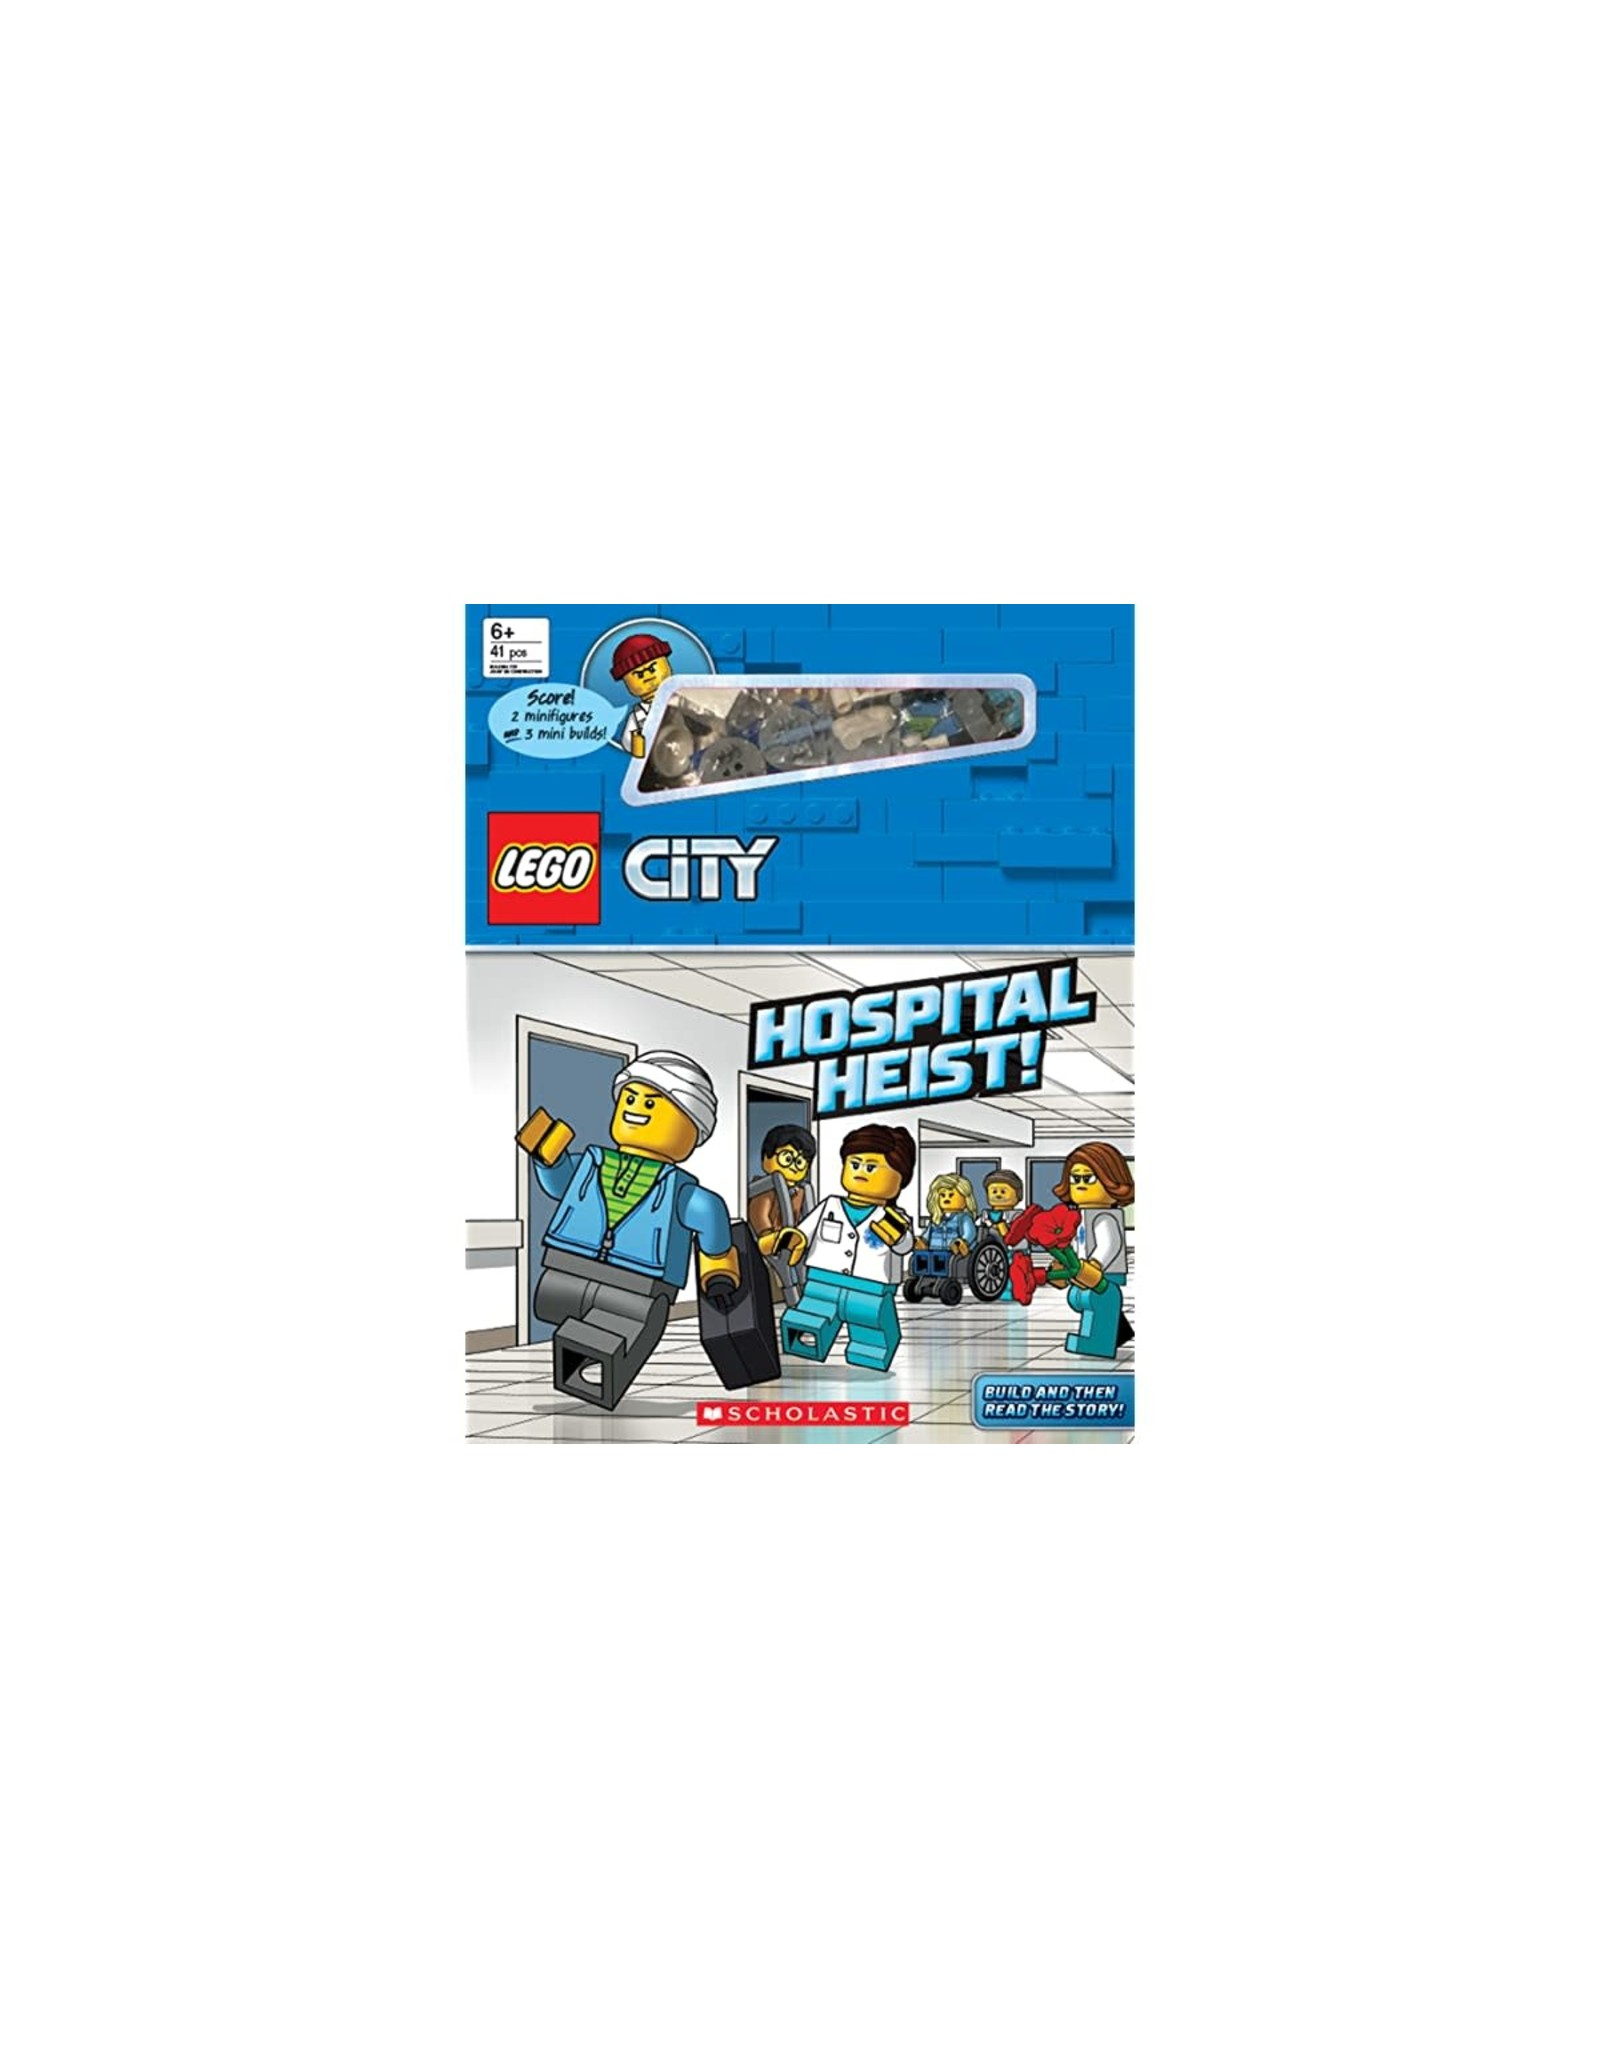 LEGO City: Hospital Heist! (Storybook with minifigures and minibuilds)